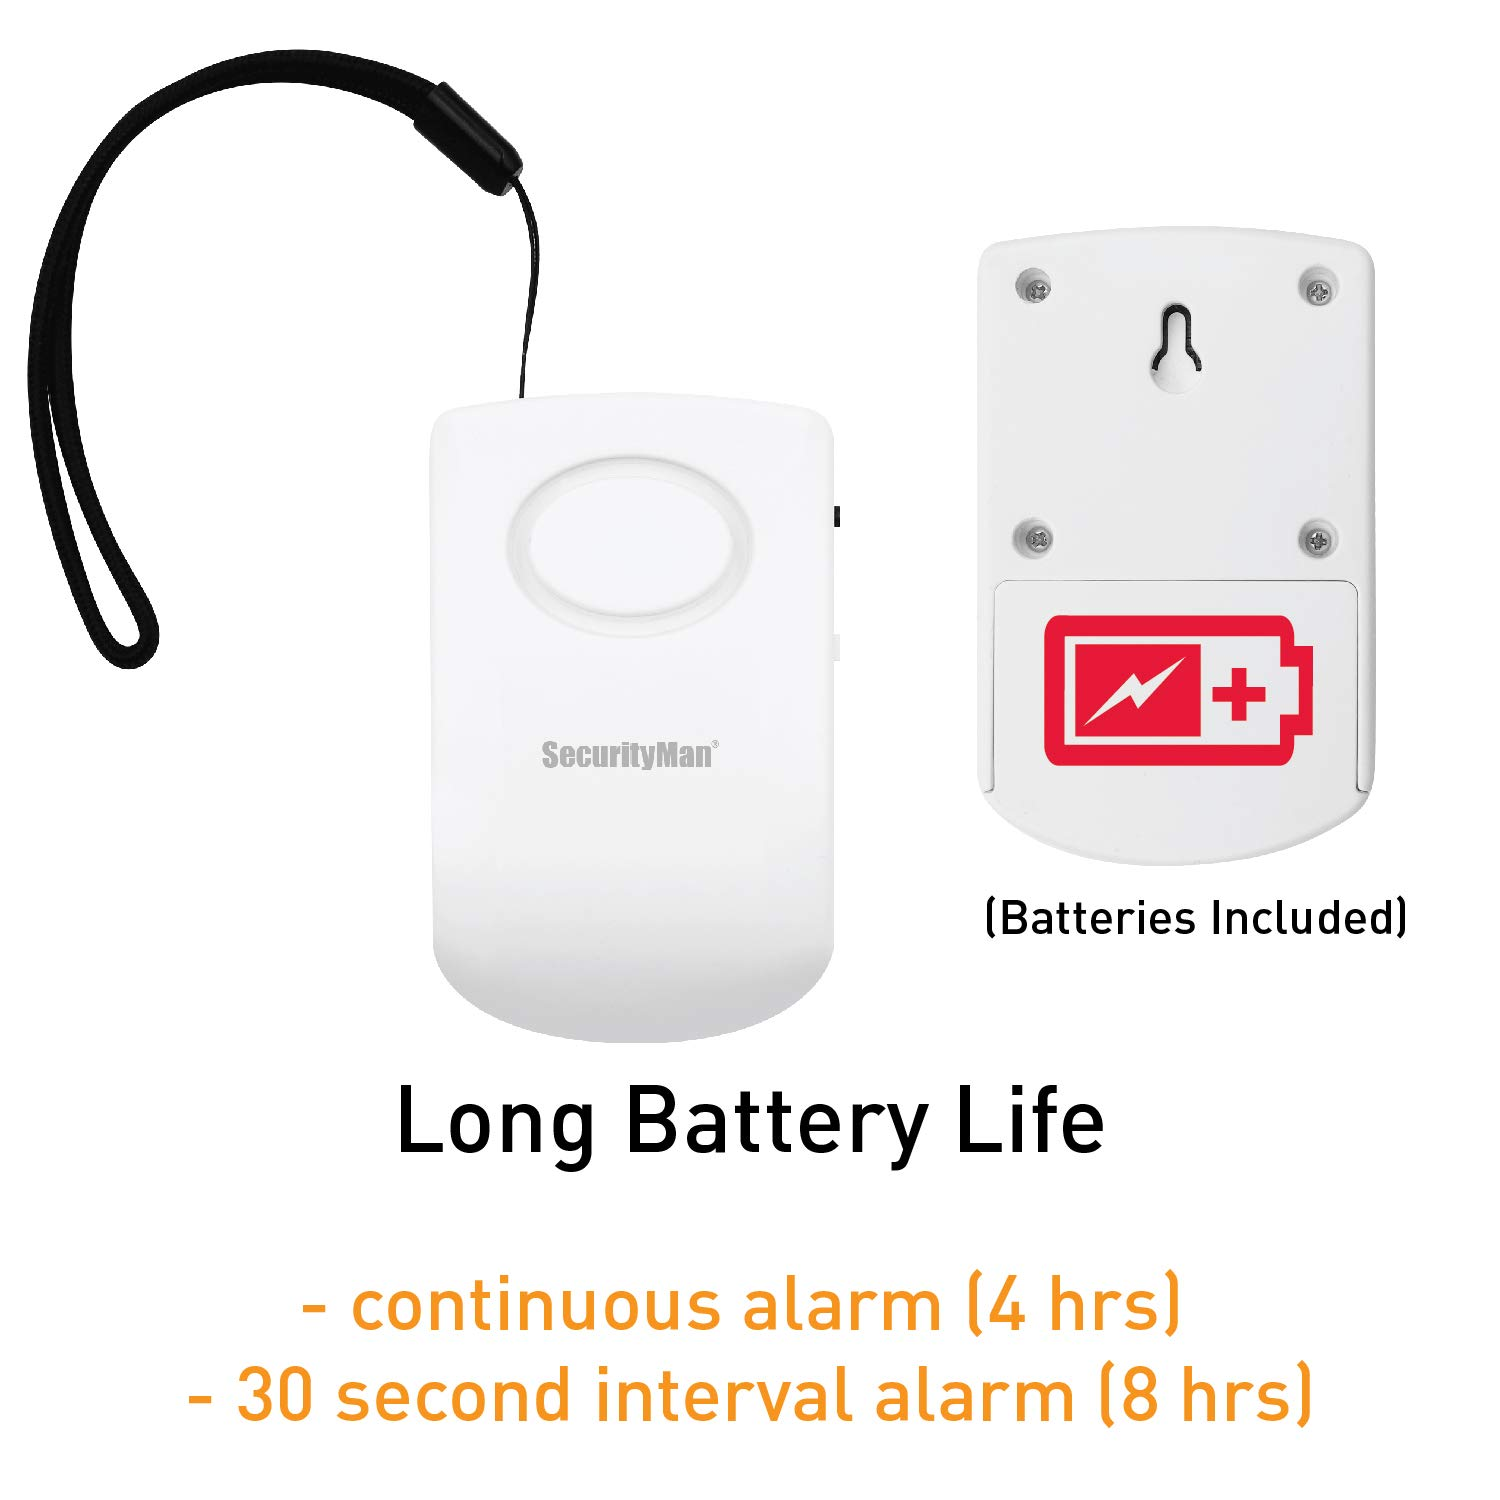 2 Pack Apartment Bedroom Hang On Door Knob Or Mount On Wall Securityman Door Handle Alarm With 130db Vibration Triggered Door Alarm Elderly Hotel Travel Perfect Use For Kids Electronics Security